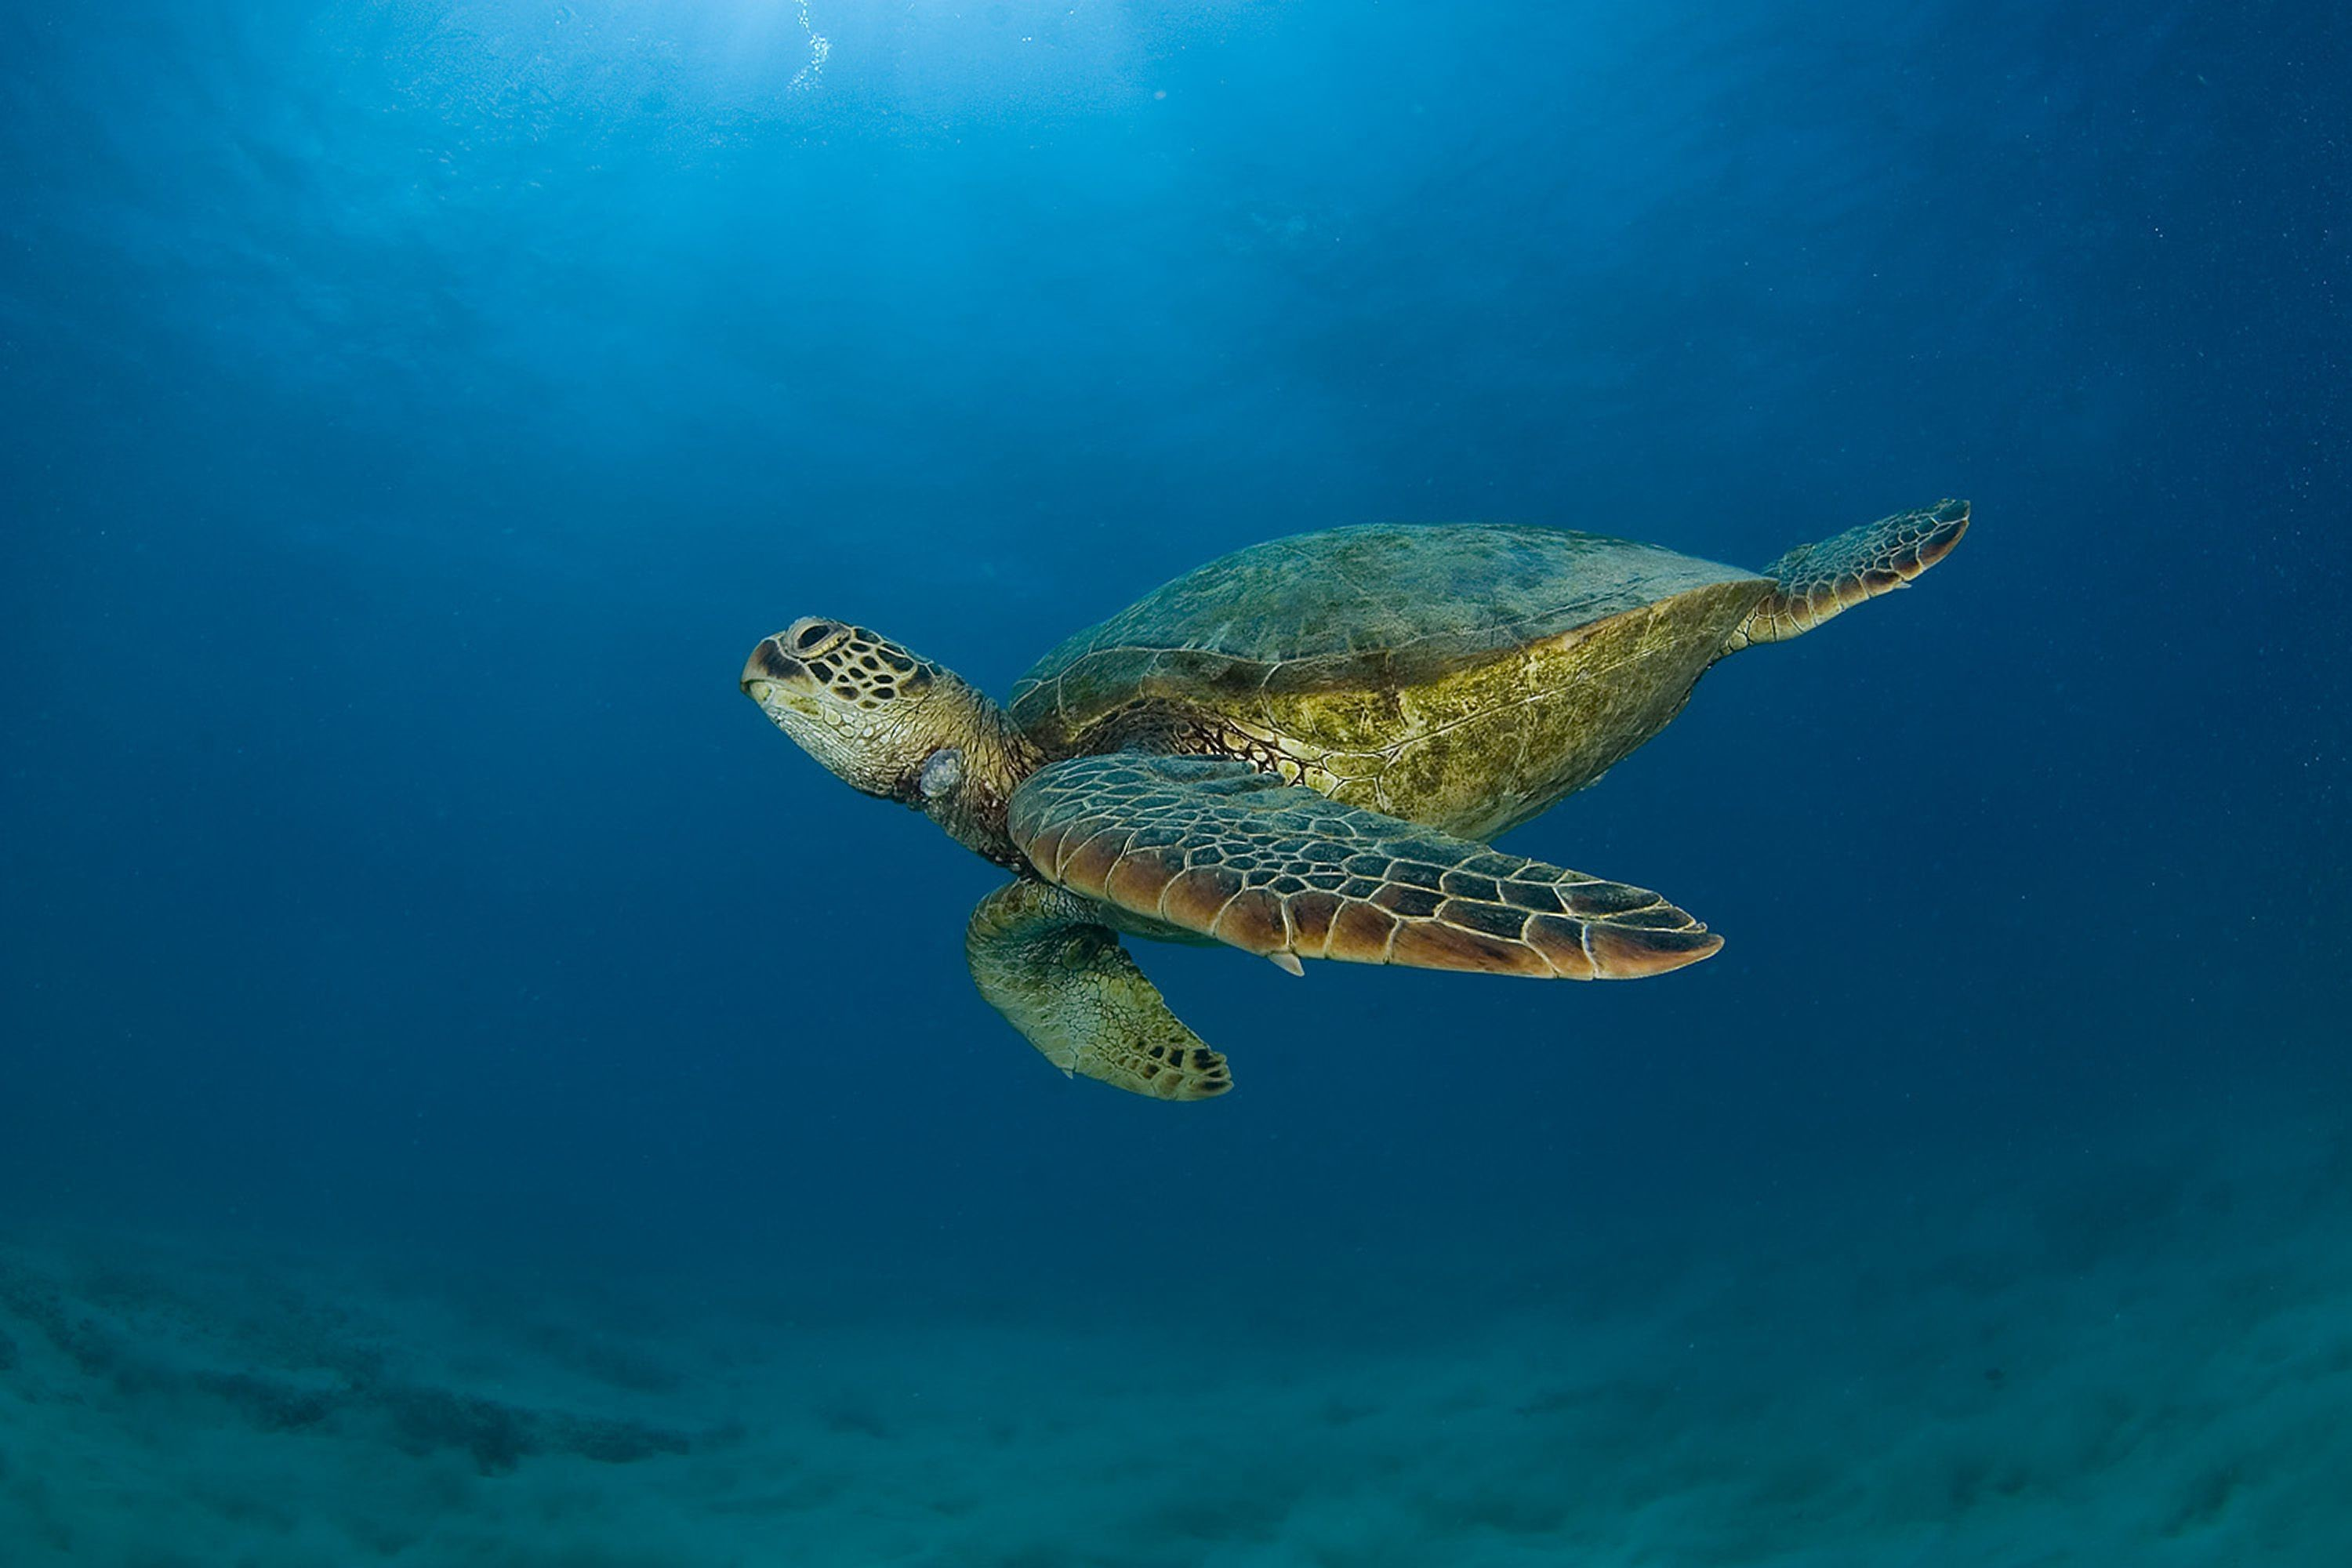 Sea Turtle Wallpaper Backgrounds (55+ images)